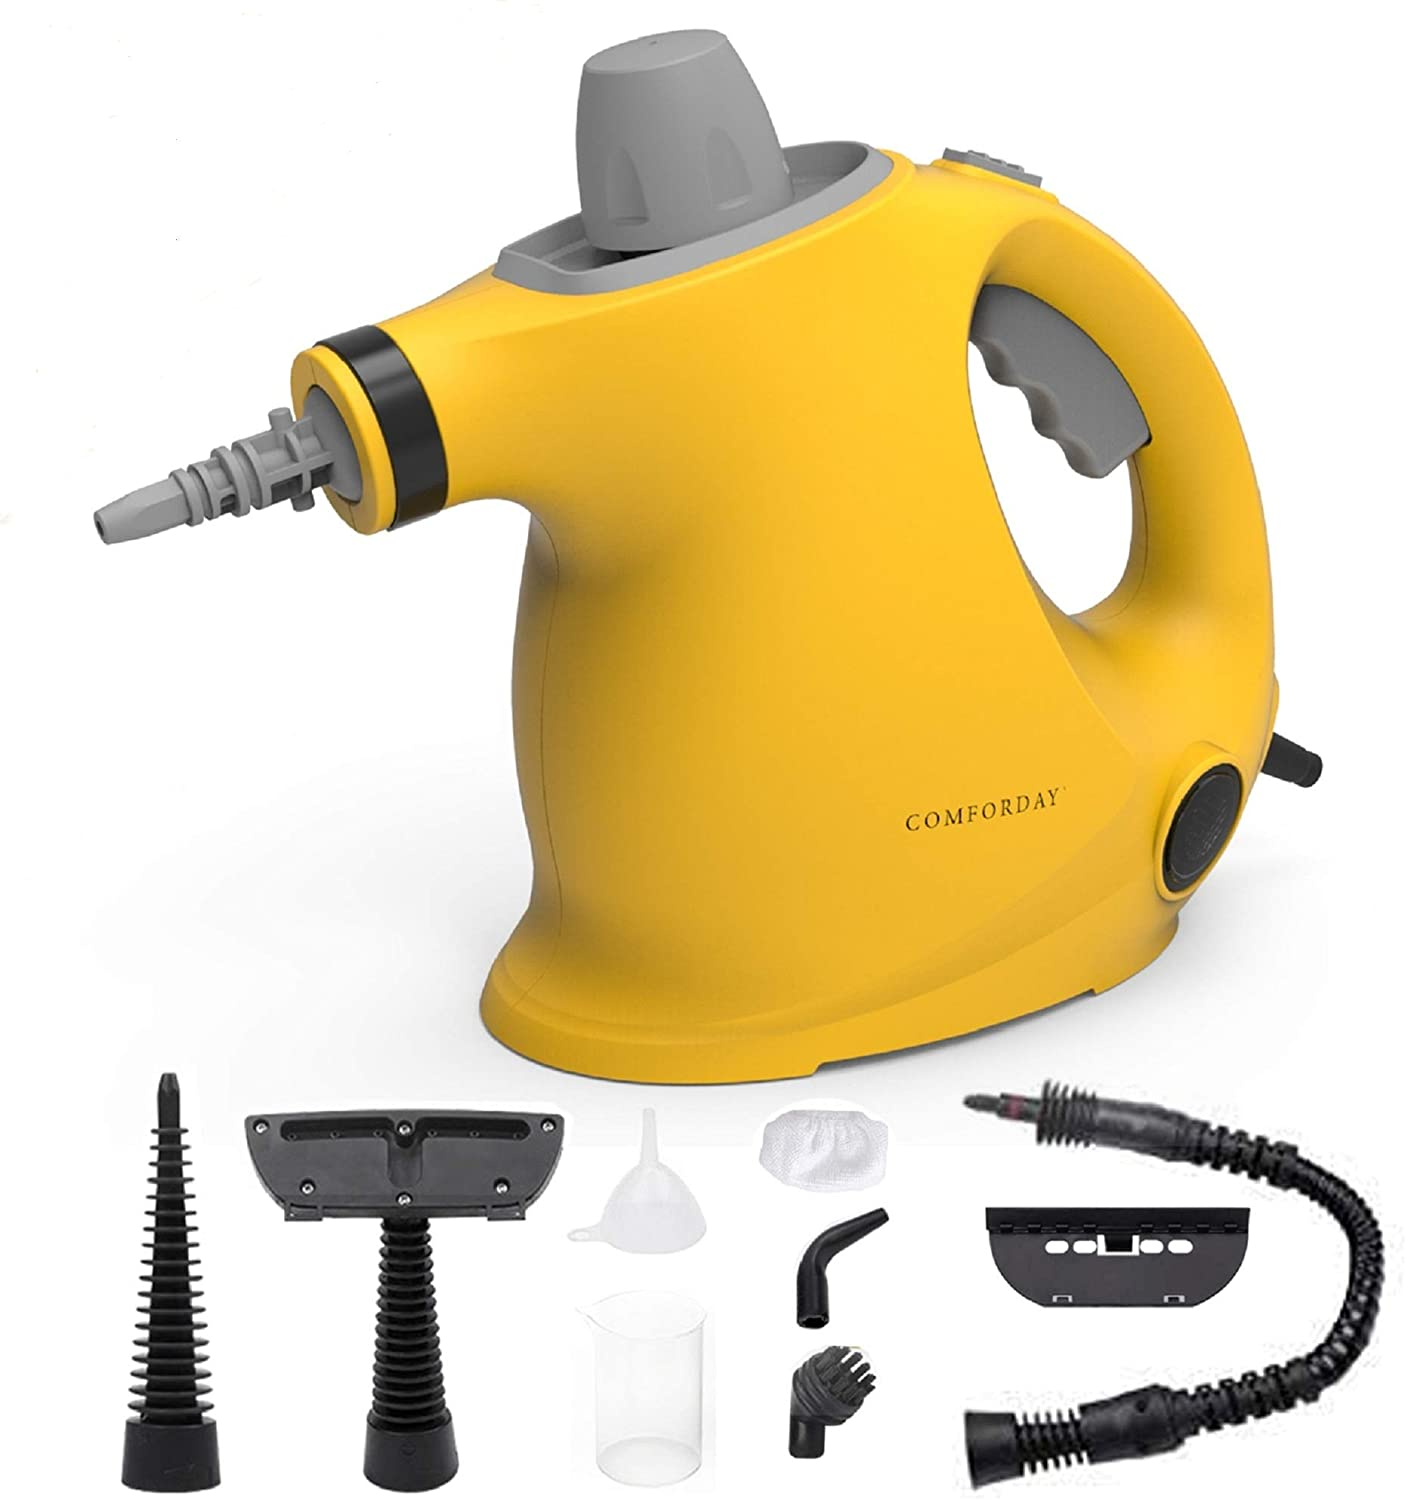 Comforday Multi-Purpose Handheld Pressurized Very popular Selling Cleaner with Steam